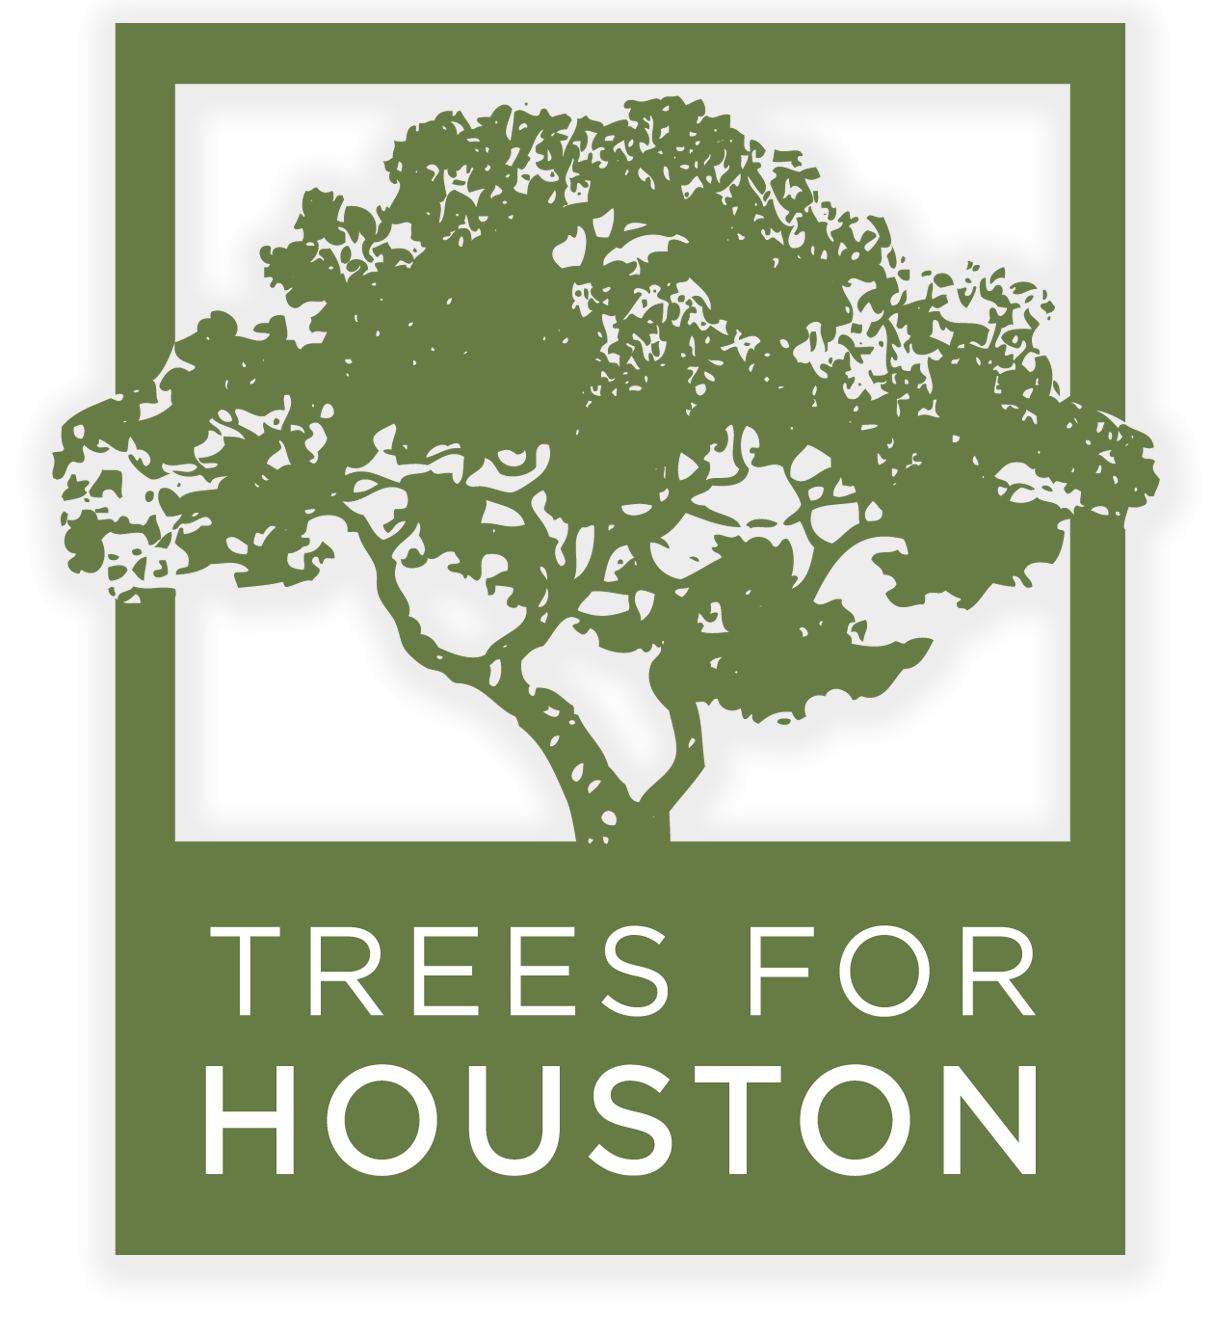 TREES FOR HOUSTON.png